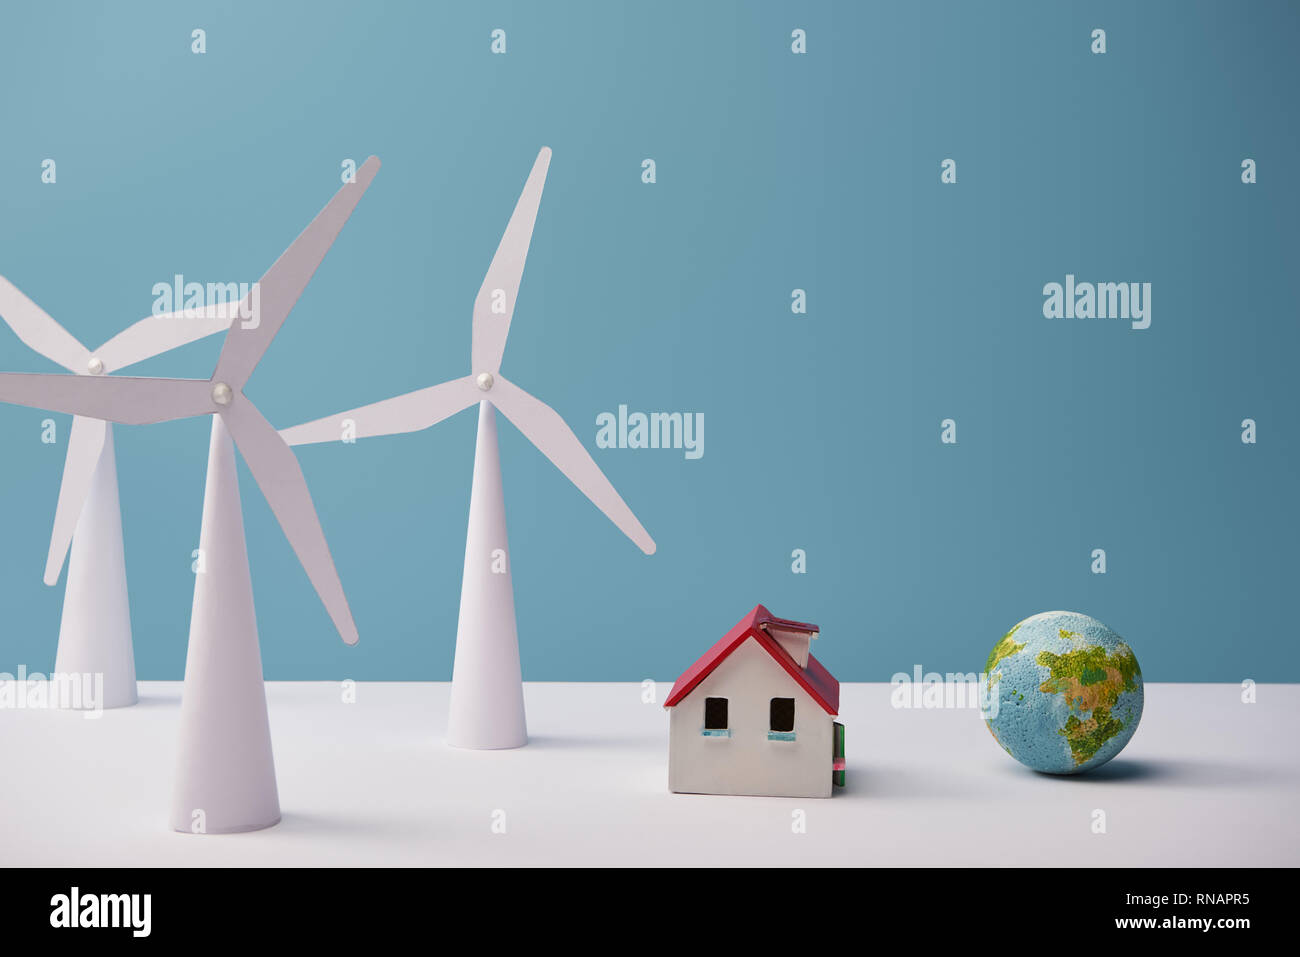 windmill and house models with small globe on white table and blue background - Stock Image